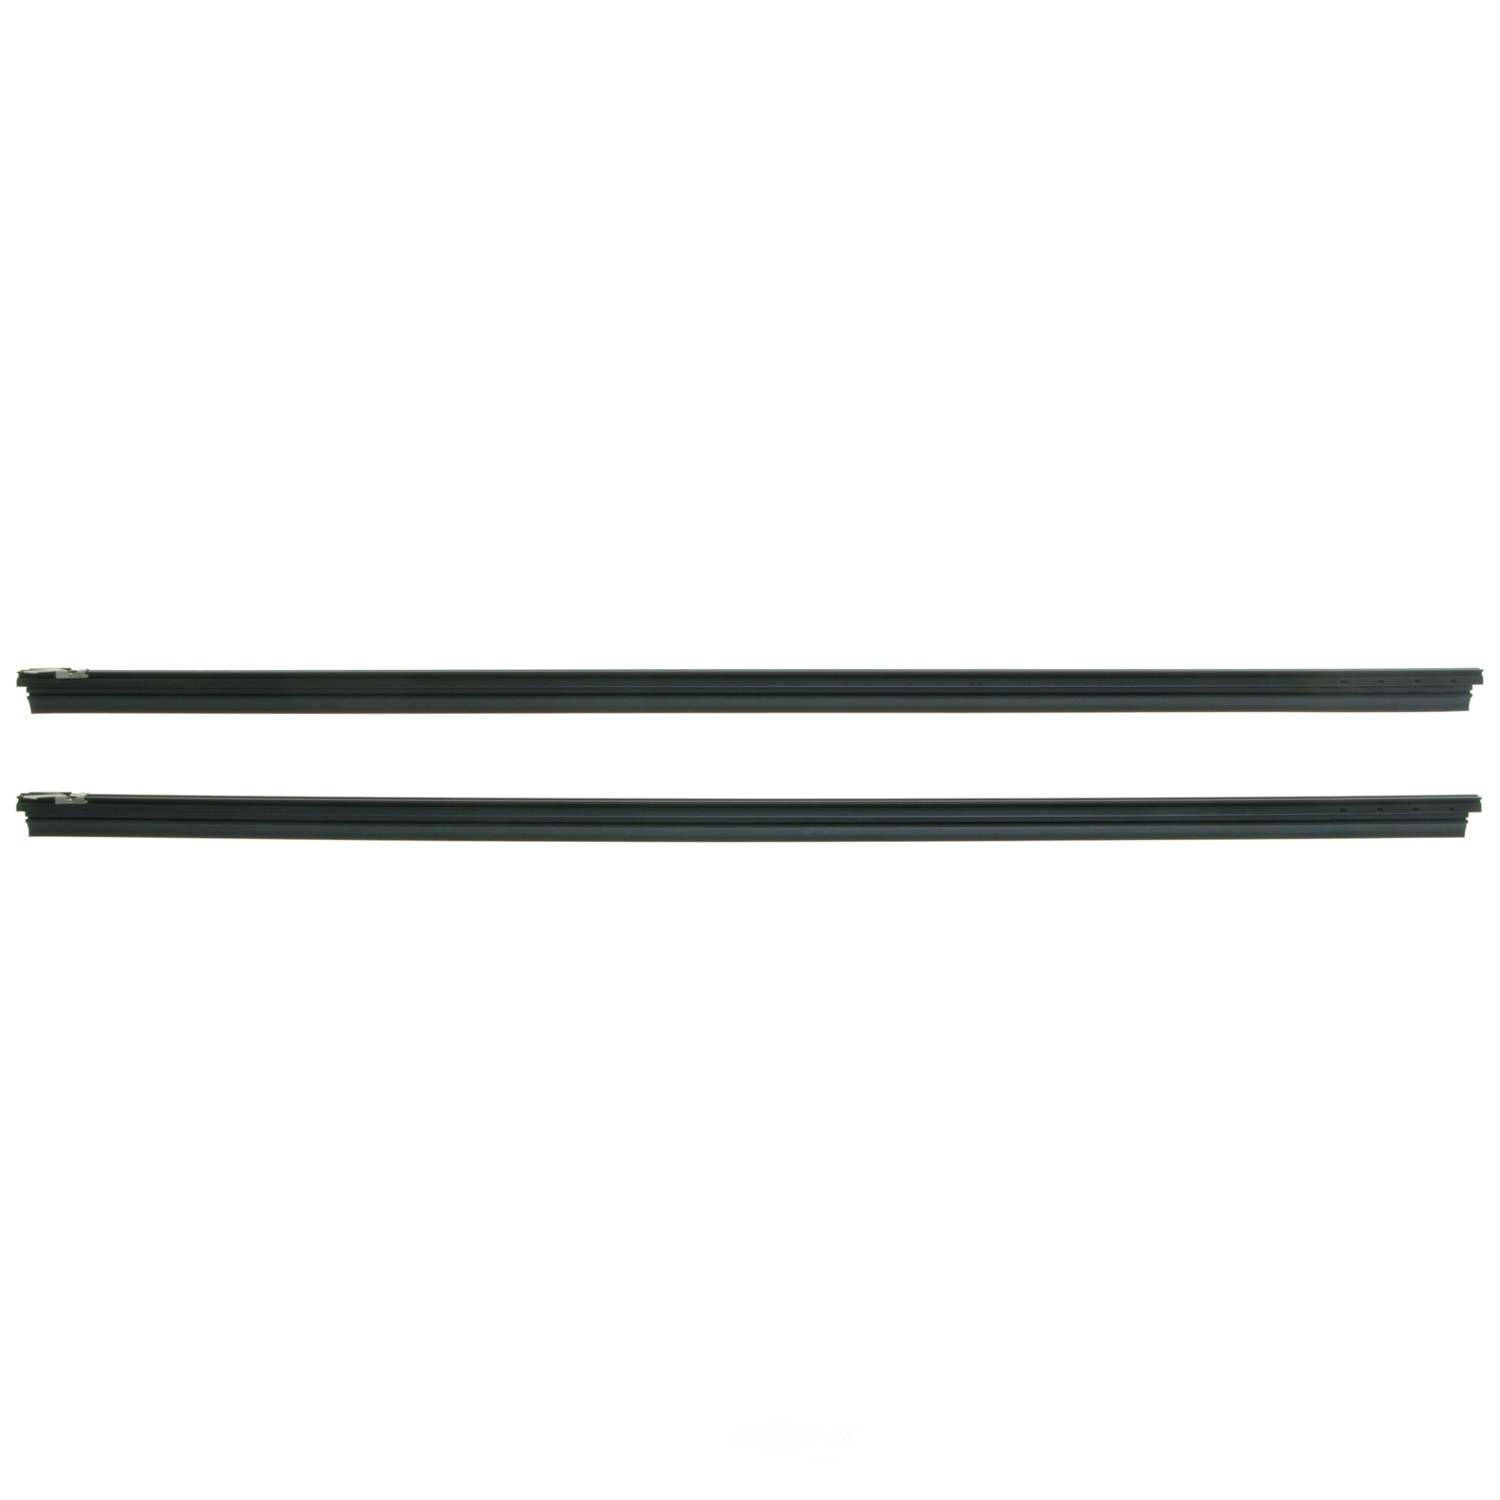 ANCO WIPER PRODUCTS - Narrow Series Refills - ANC N-16R